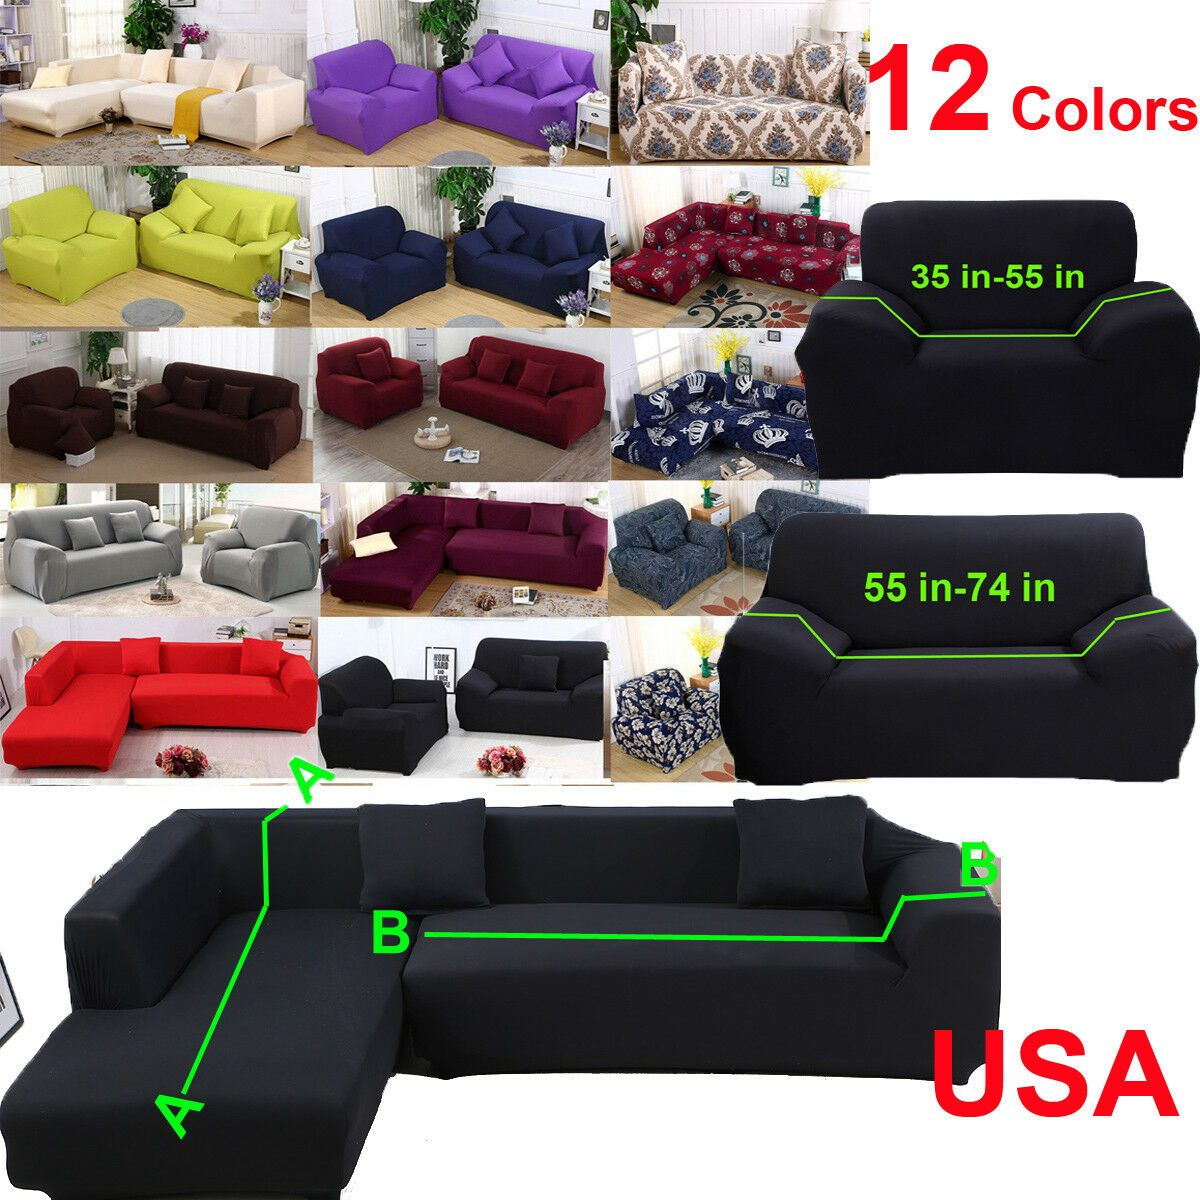 12 Colors Stretch Couch Slipcover Sofa Cover L Shape Sectional Corner 3 4 Seater 23 93 Wine Id In 2020 Slip Covers Couch Slipcovered Sofa Couch Covers Slipcovers